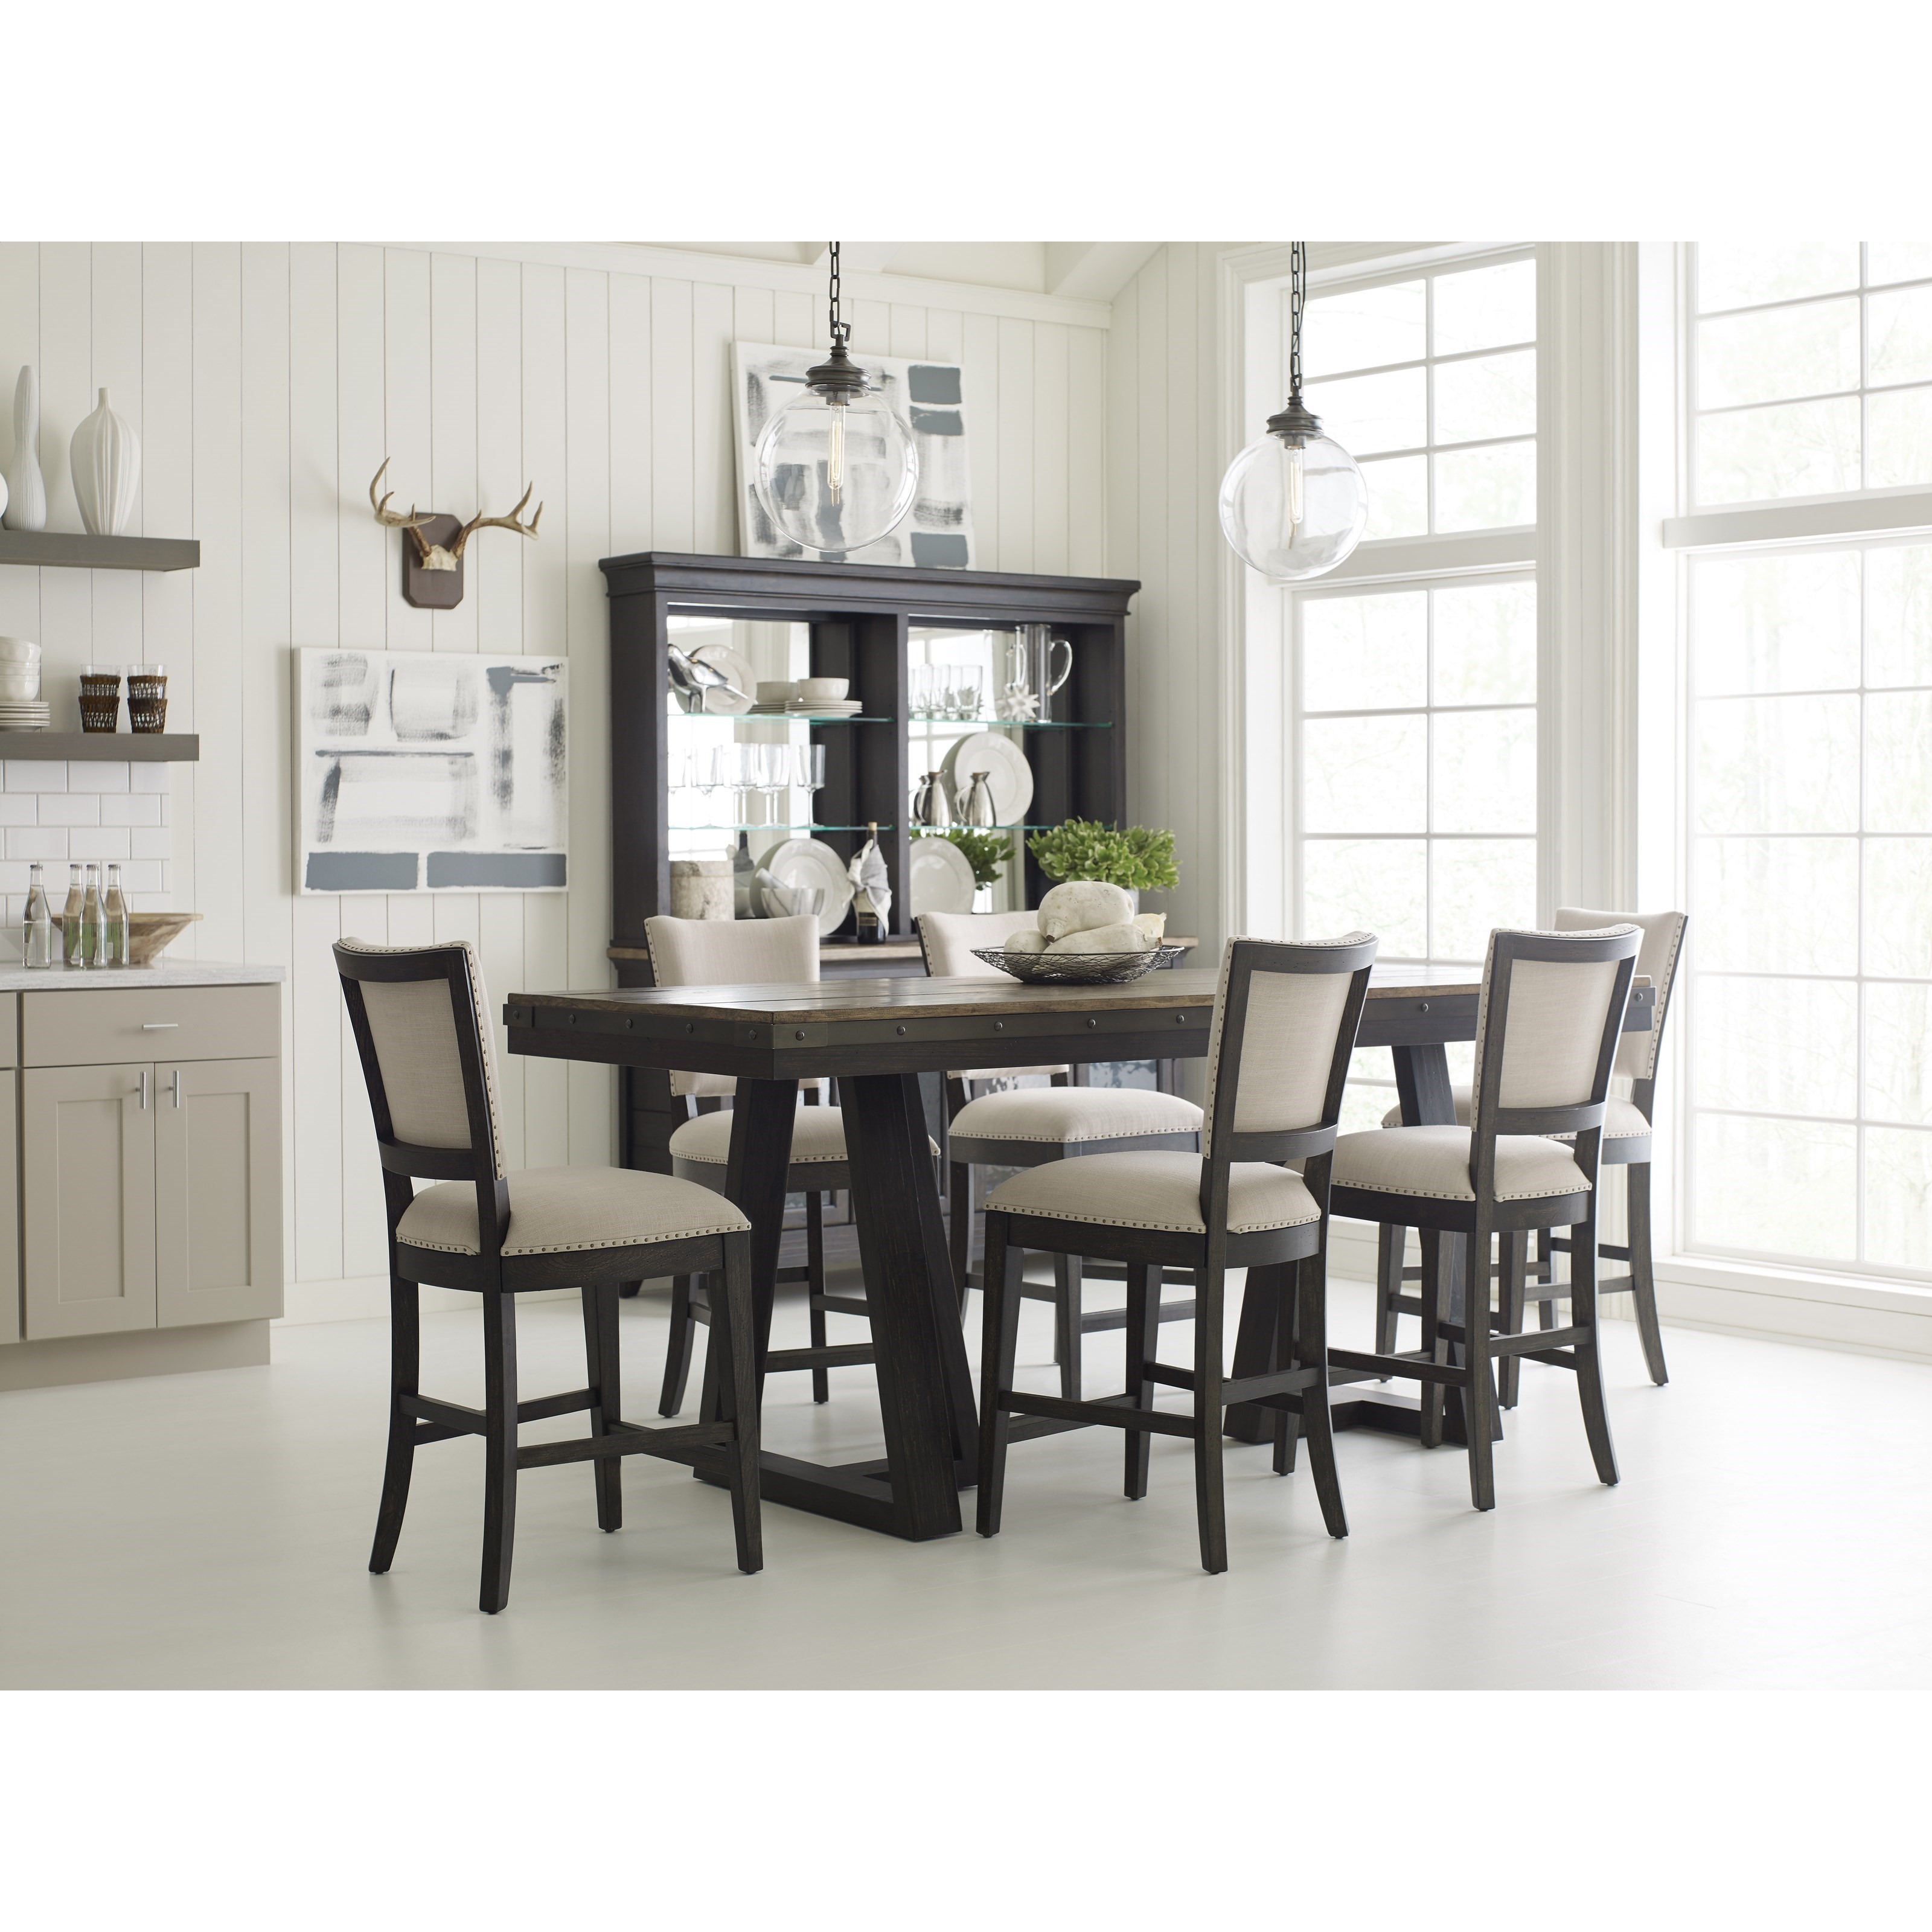 Plank Road Formal Counter Height Dining Room Set at Stoney Creek Furniture